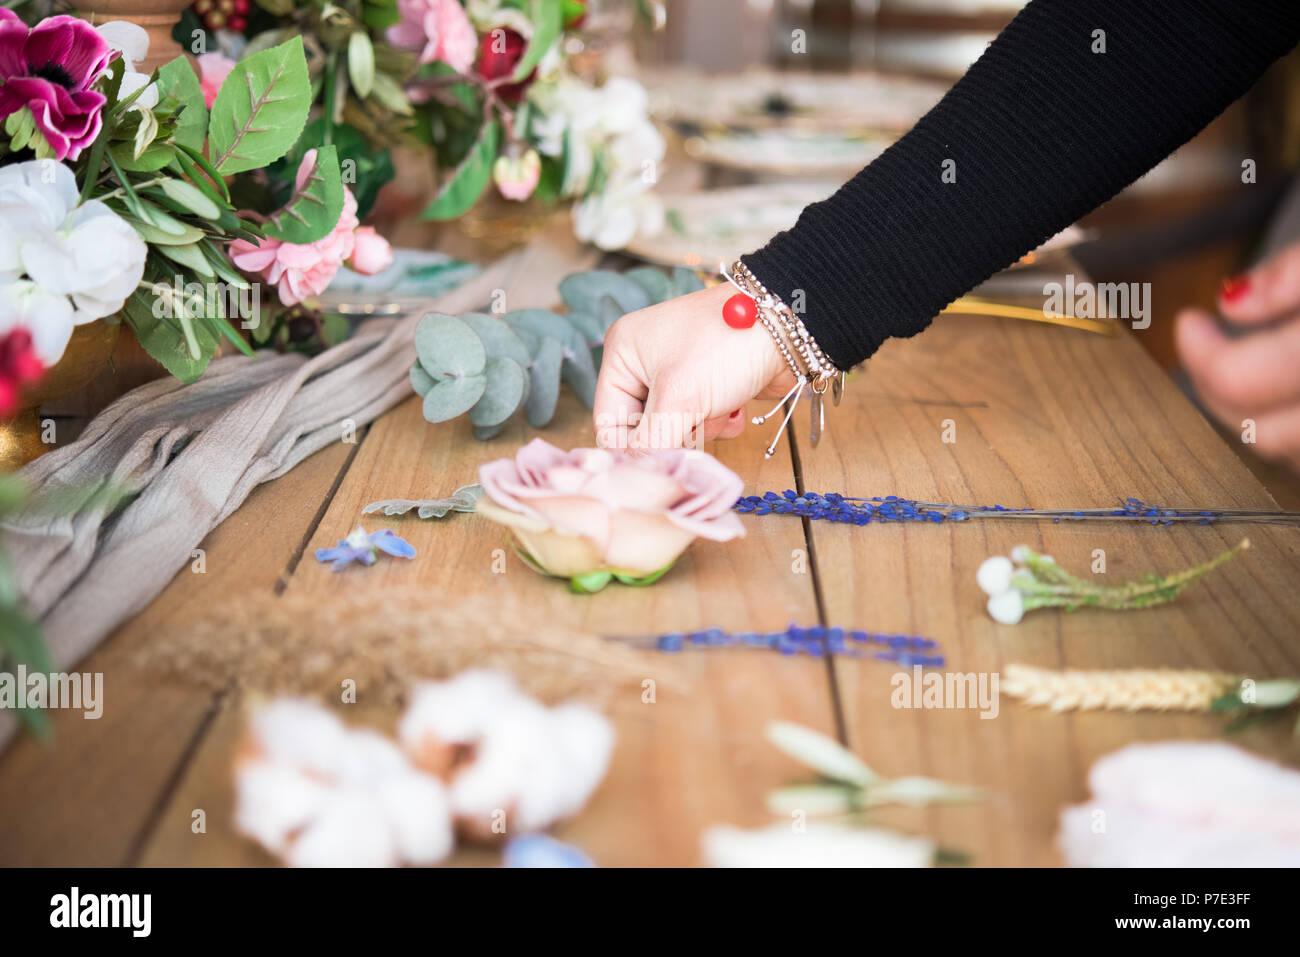 Woman arranging flower head and stems on wooden table, detail of hand Stock Photo